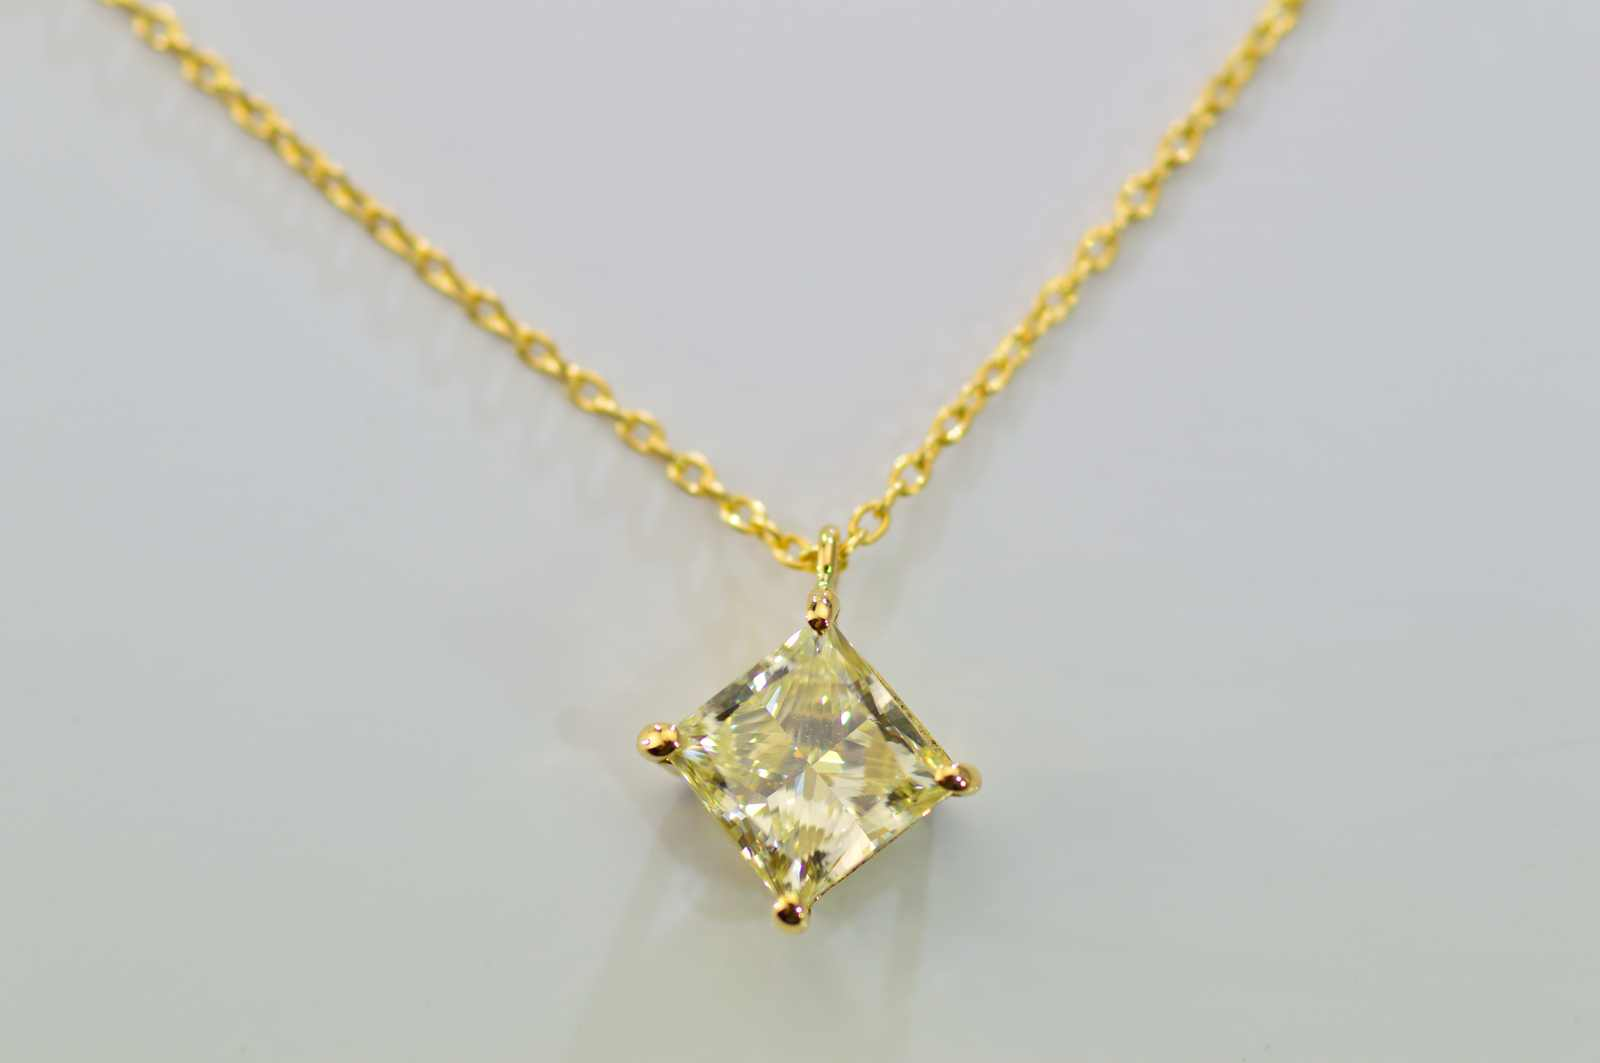 Diadia rakuten global market 1 carat yellow gold with diamond 1 carat yellow gold with diamond pendants princess cutdianecklace m color vs1 lemon bright and colorful aloadofball Image collections